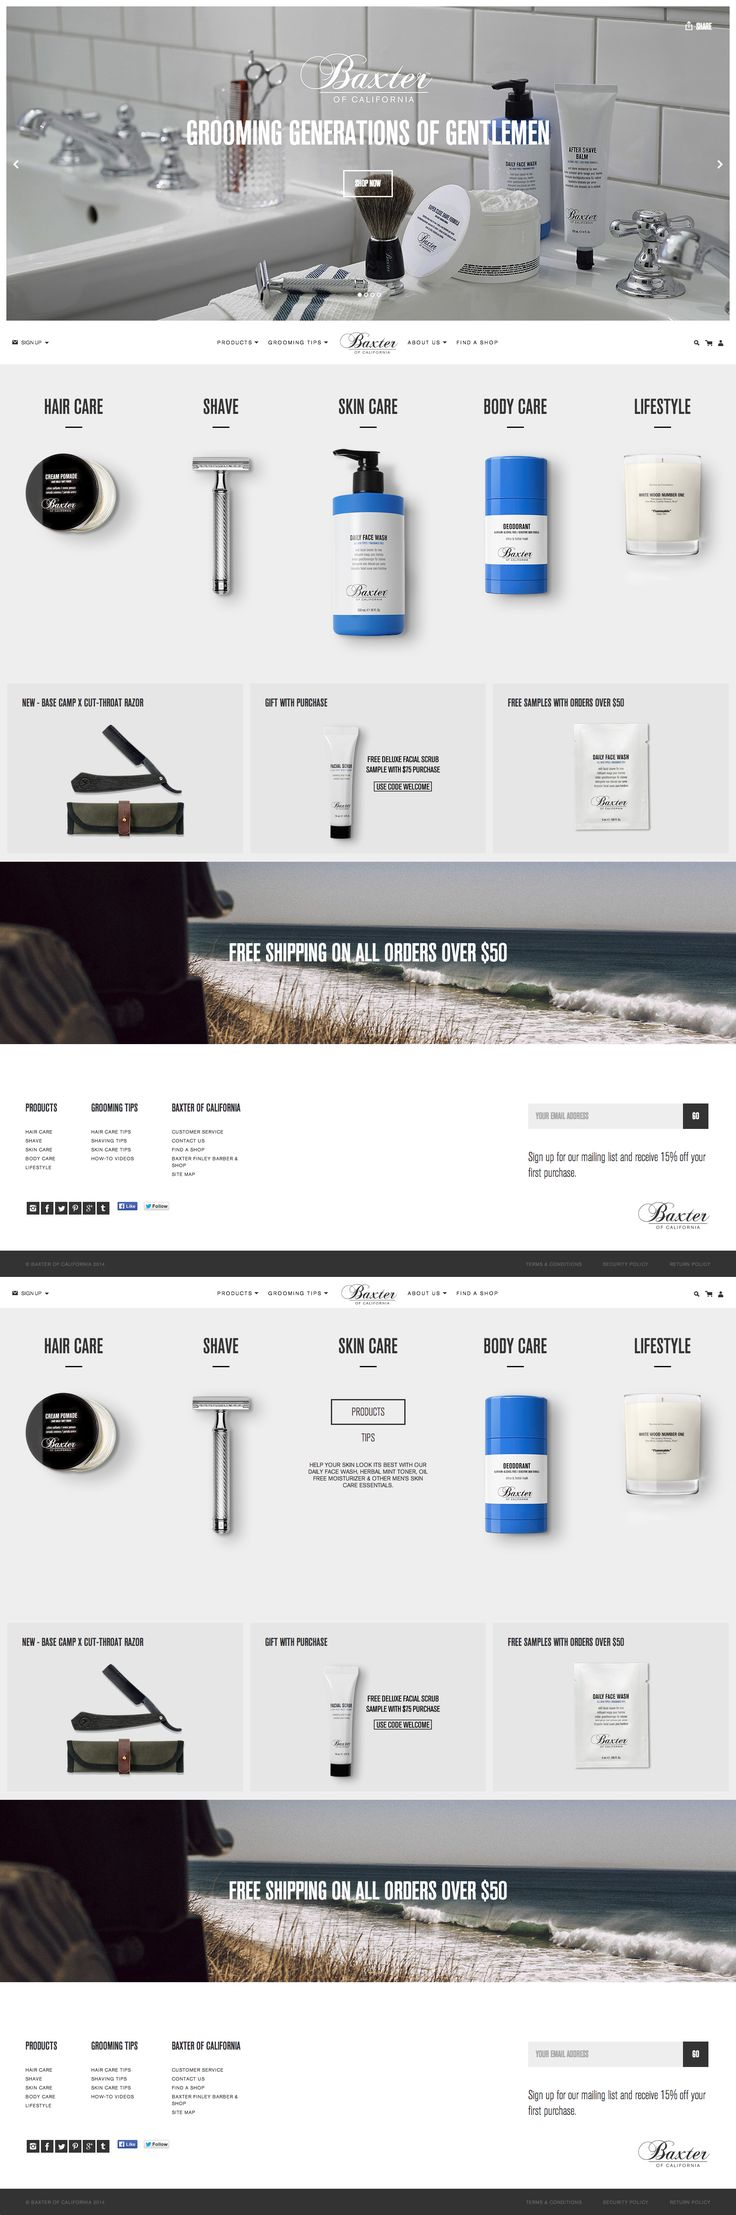 Slick design. Good for selling products. #web #design